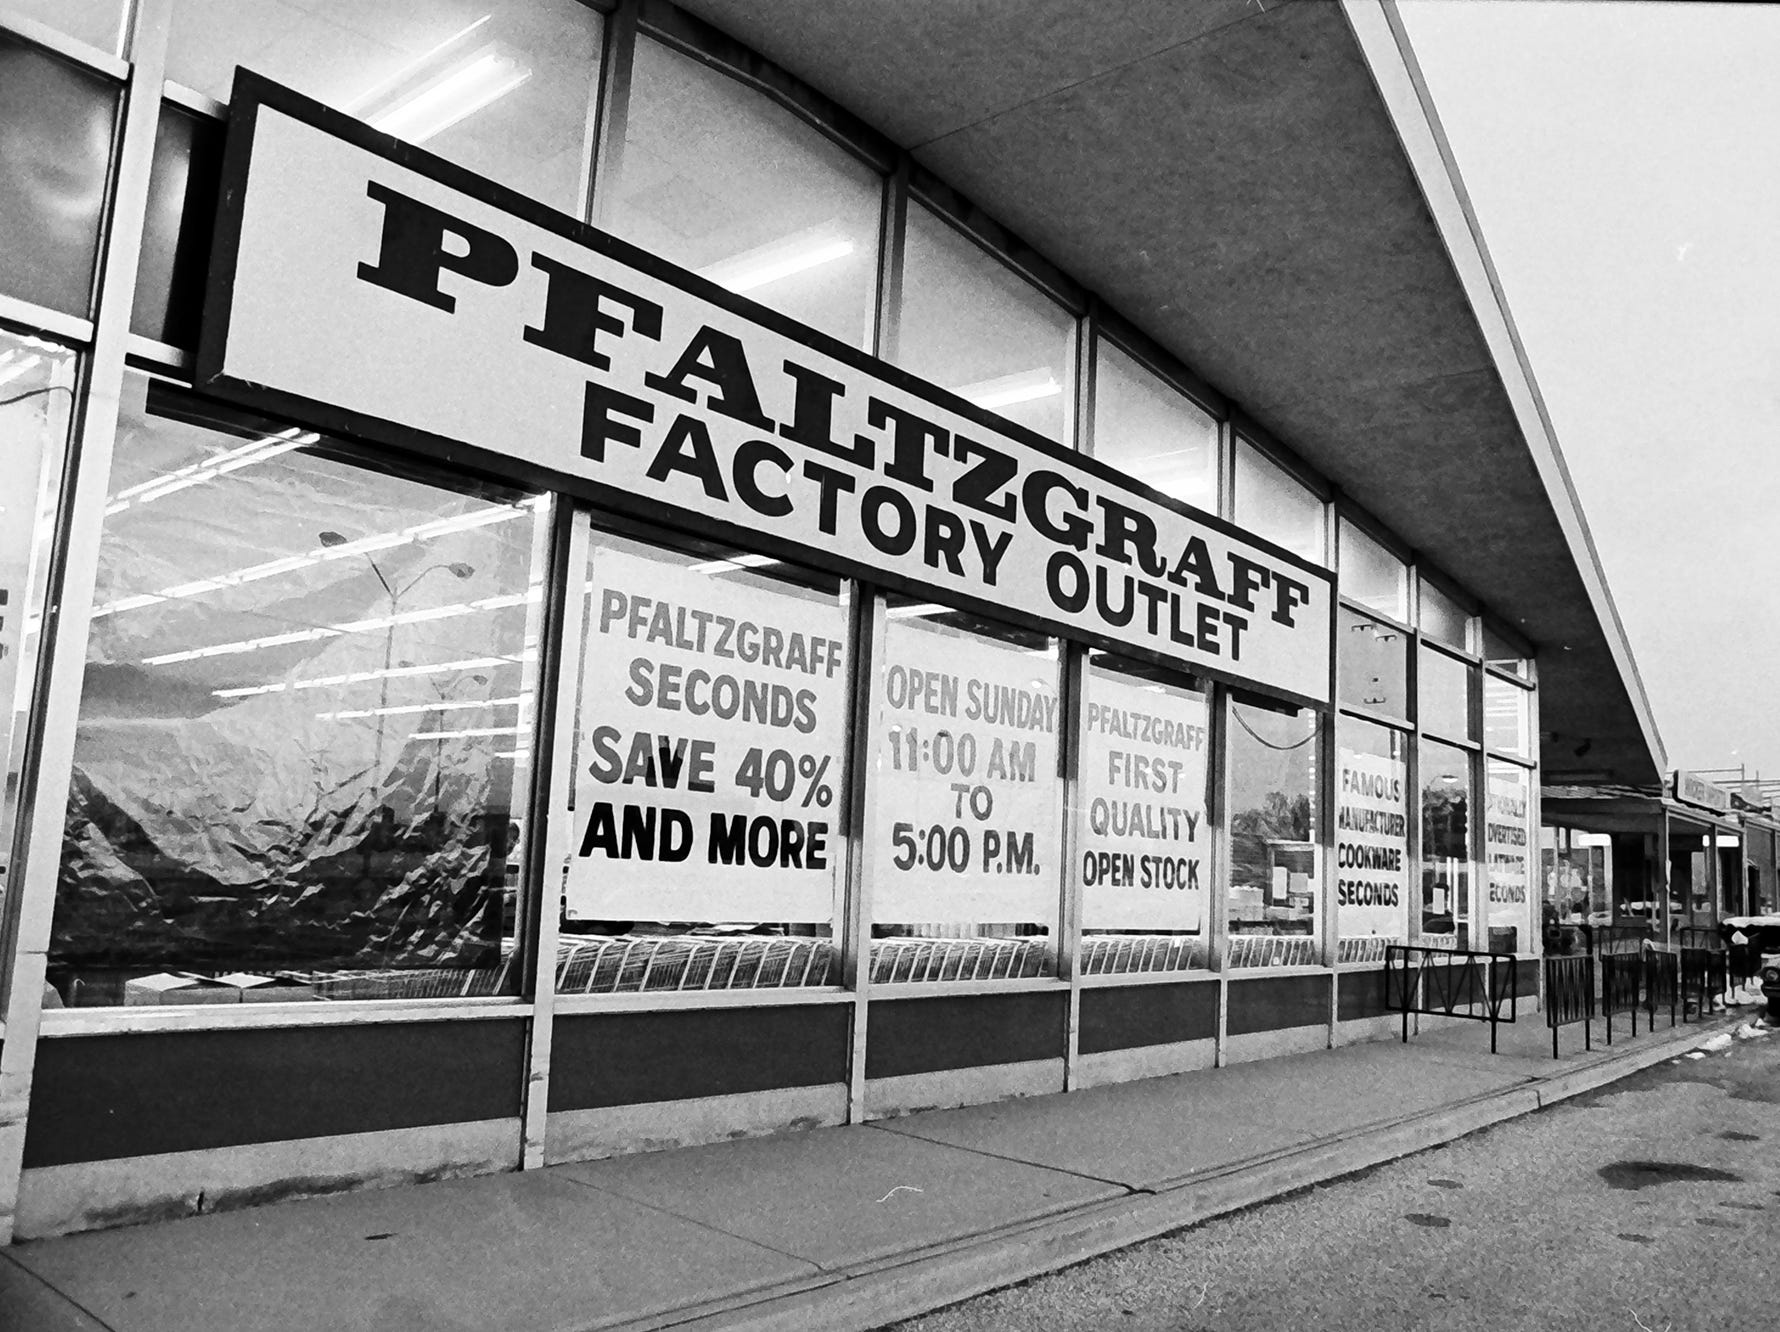 The Pfaltzgraff Factory Outlet was in the Village Green Shopping Center in Springettsbury Township. Since 1985, the facade has changed and a Fuddruckers was built along East Market Street.